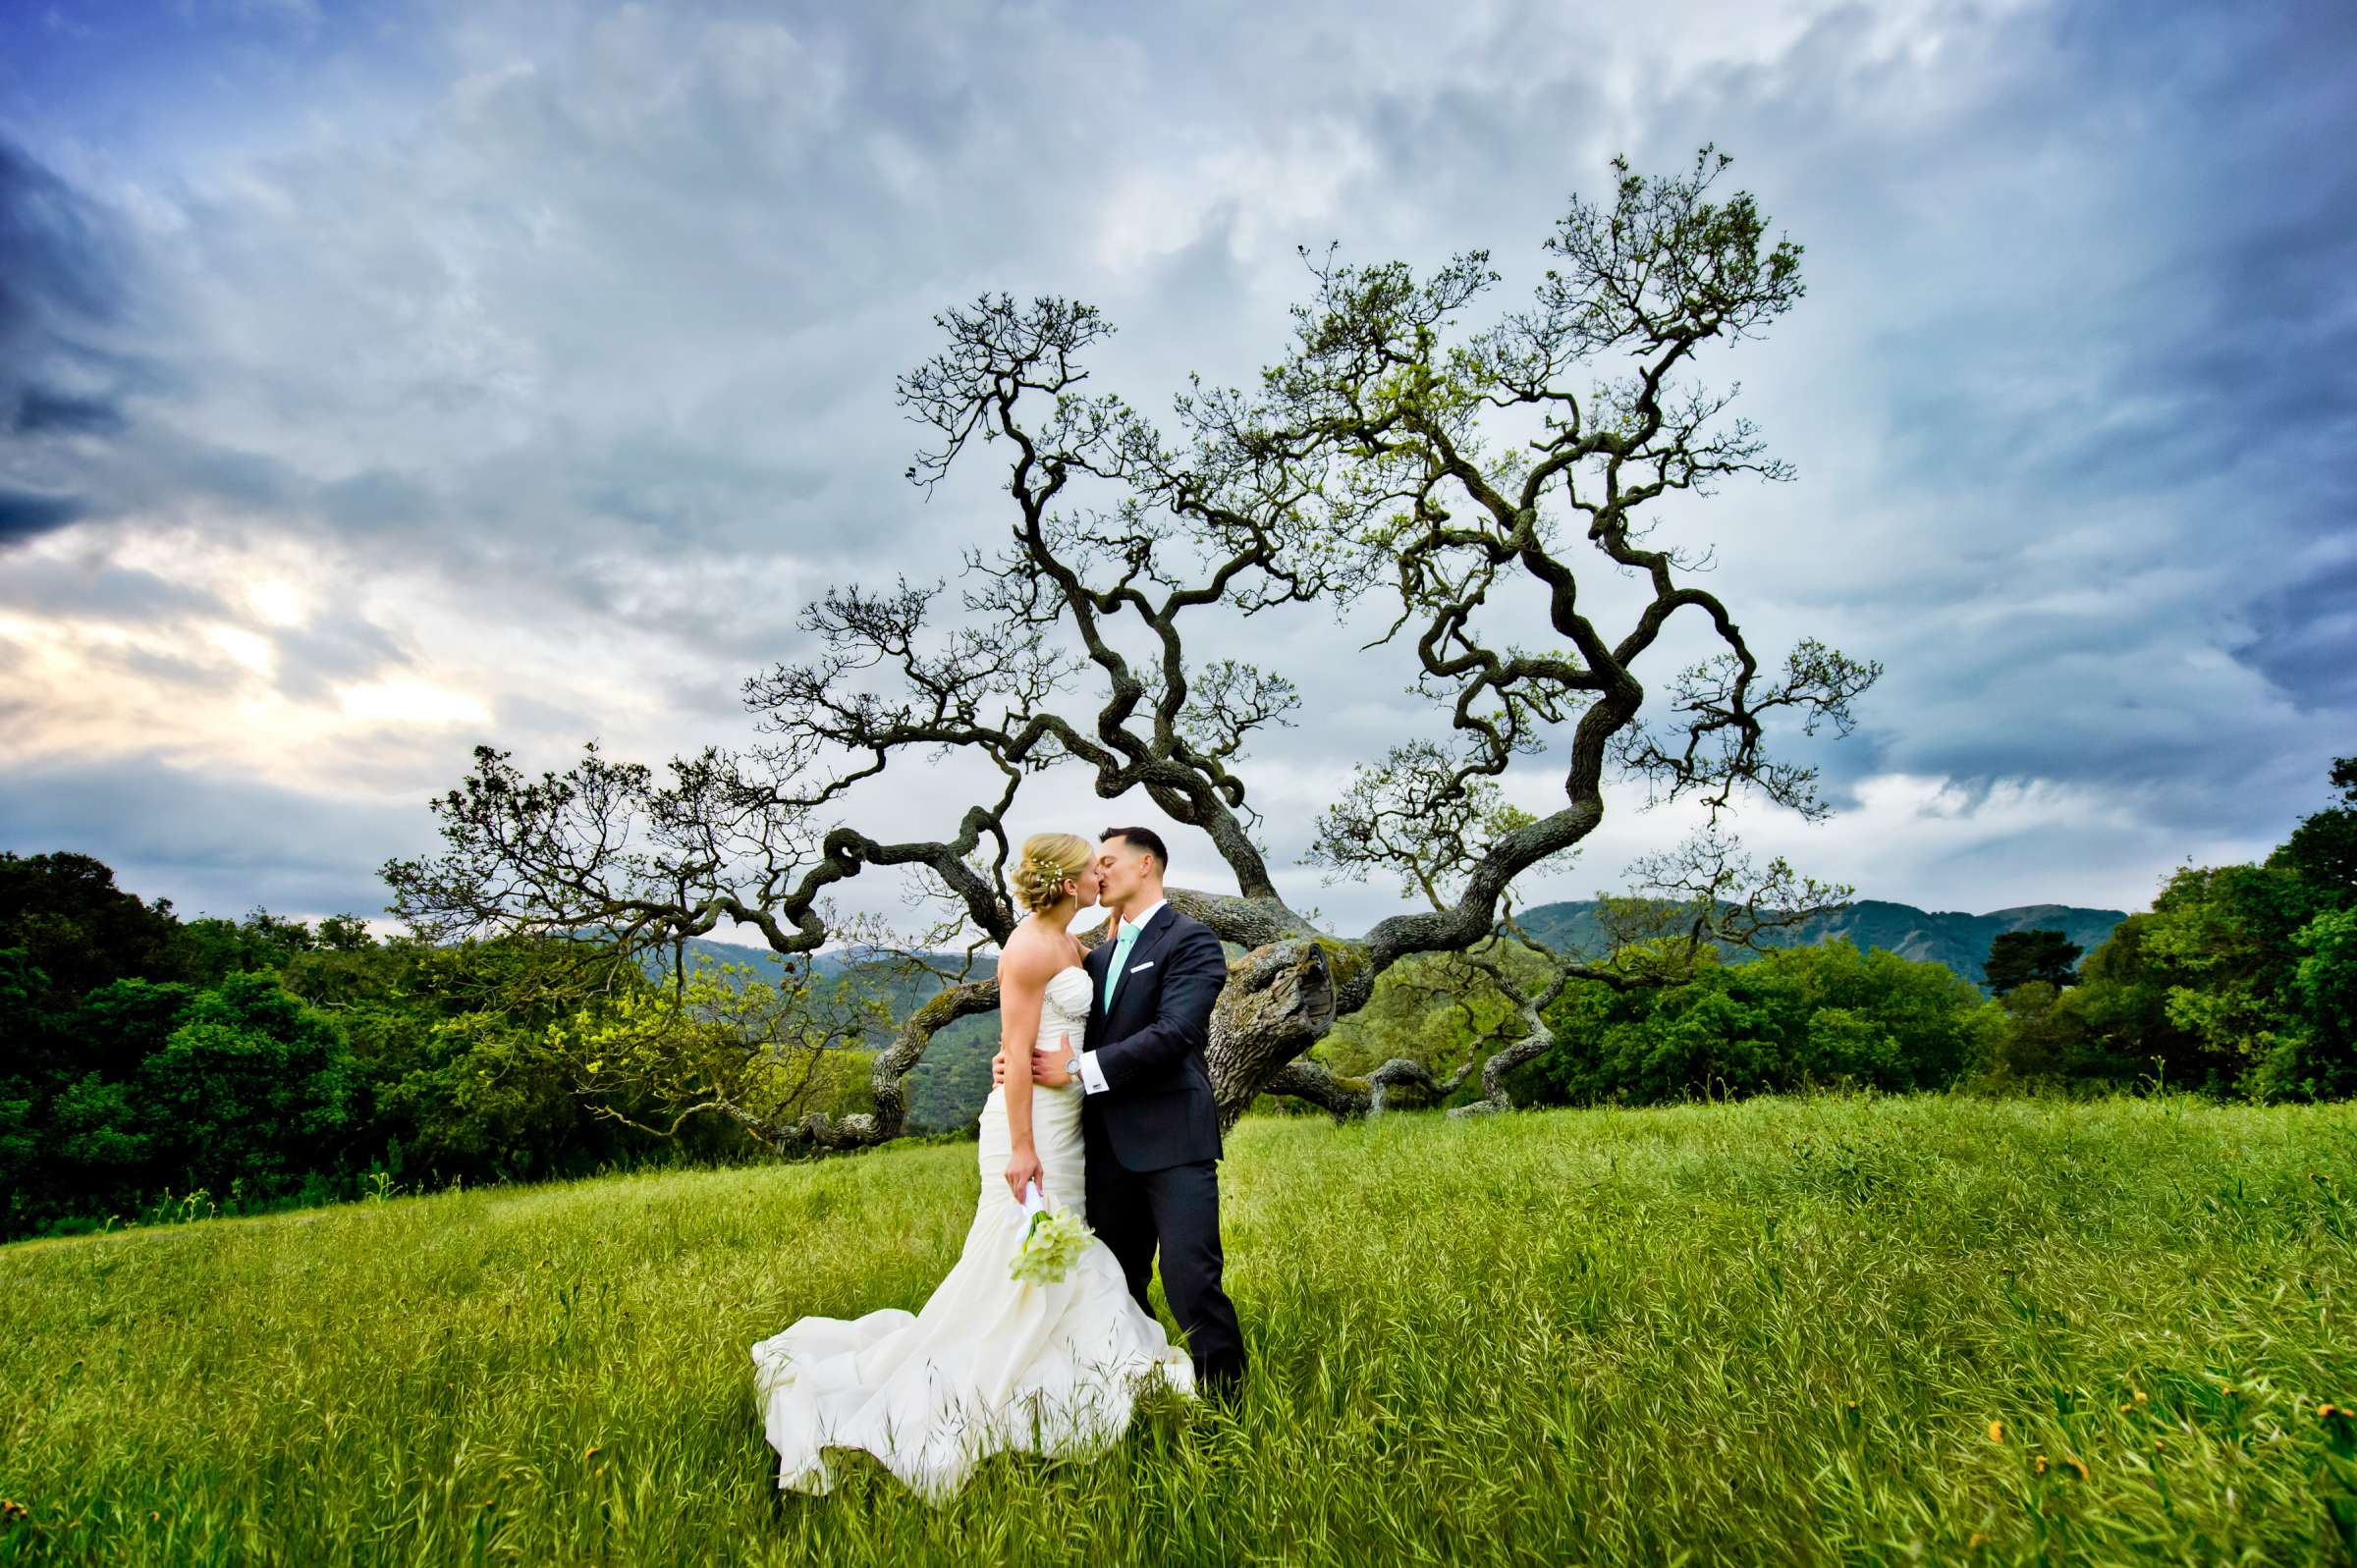 Holman Ranch Wedding, Kaley and Jason Wedding Photo #356226 by True Photography